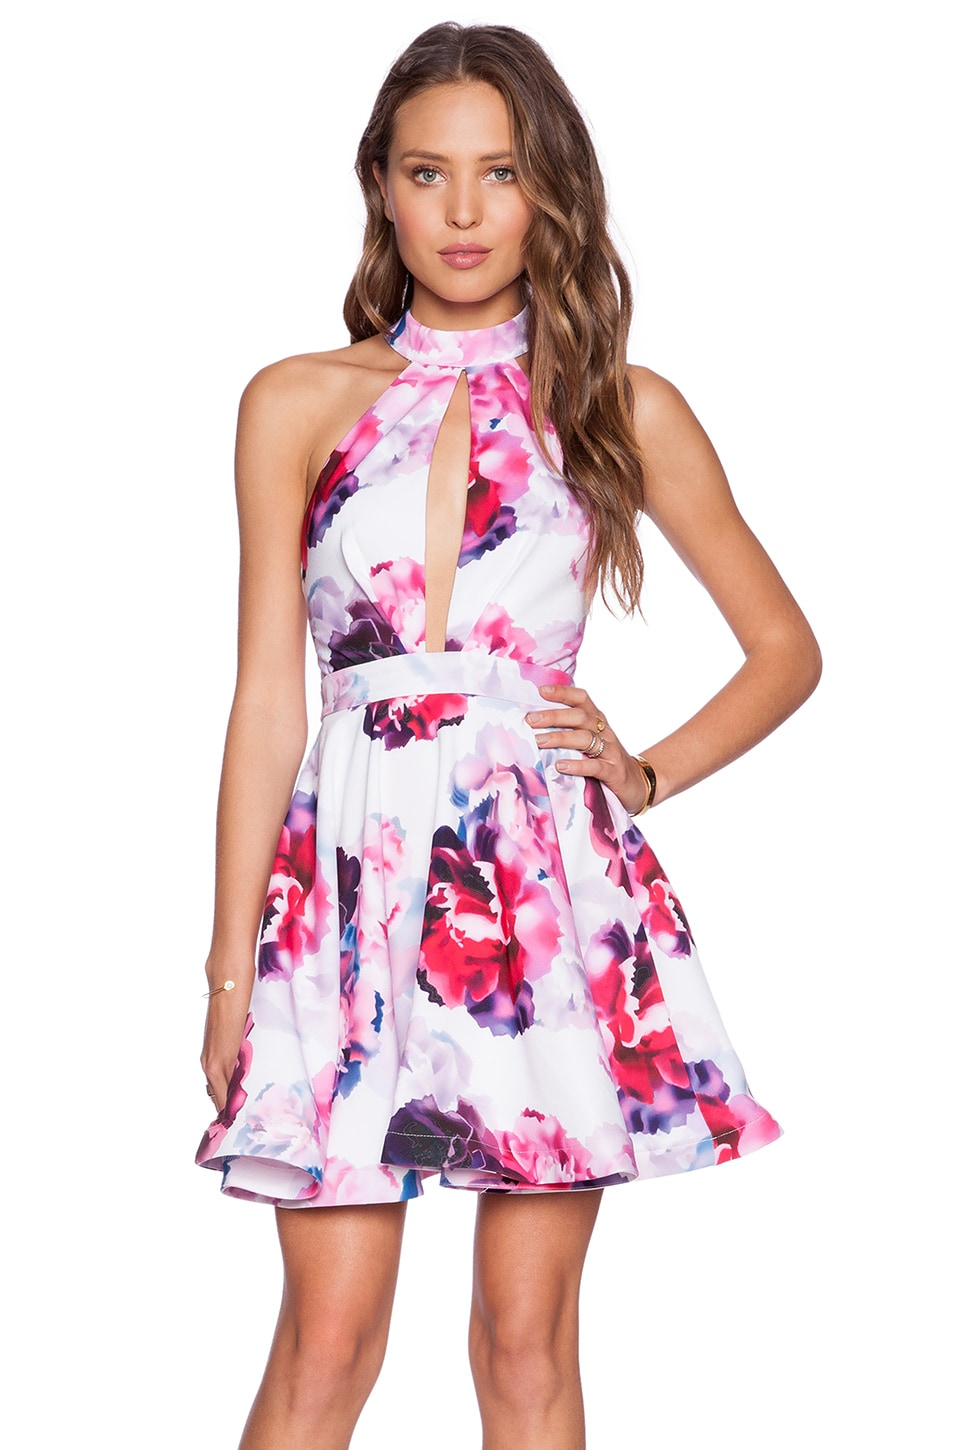 tiger Mist Raspberry Blossom Skater Dress in Floral